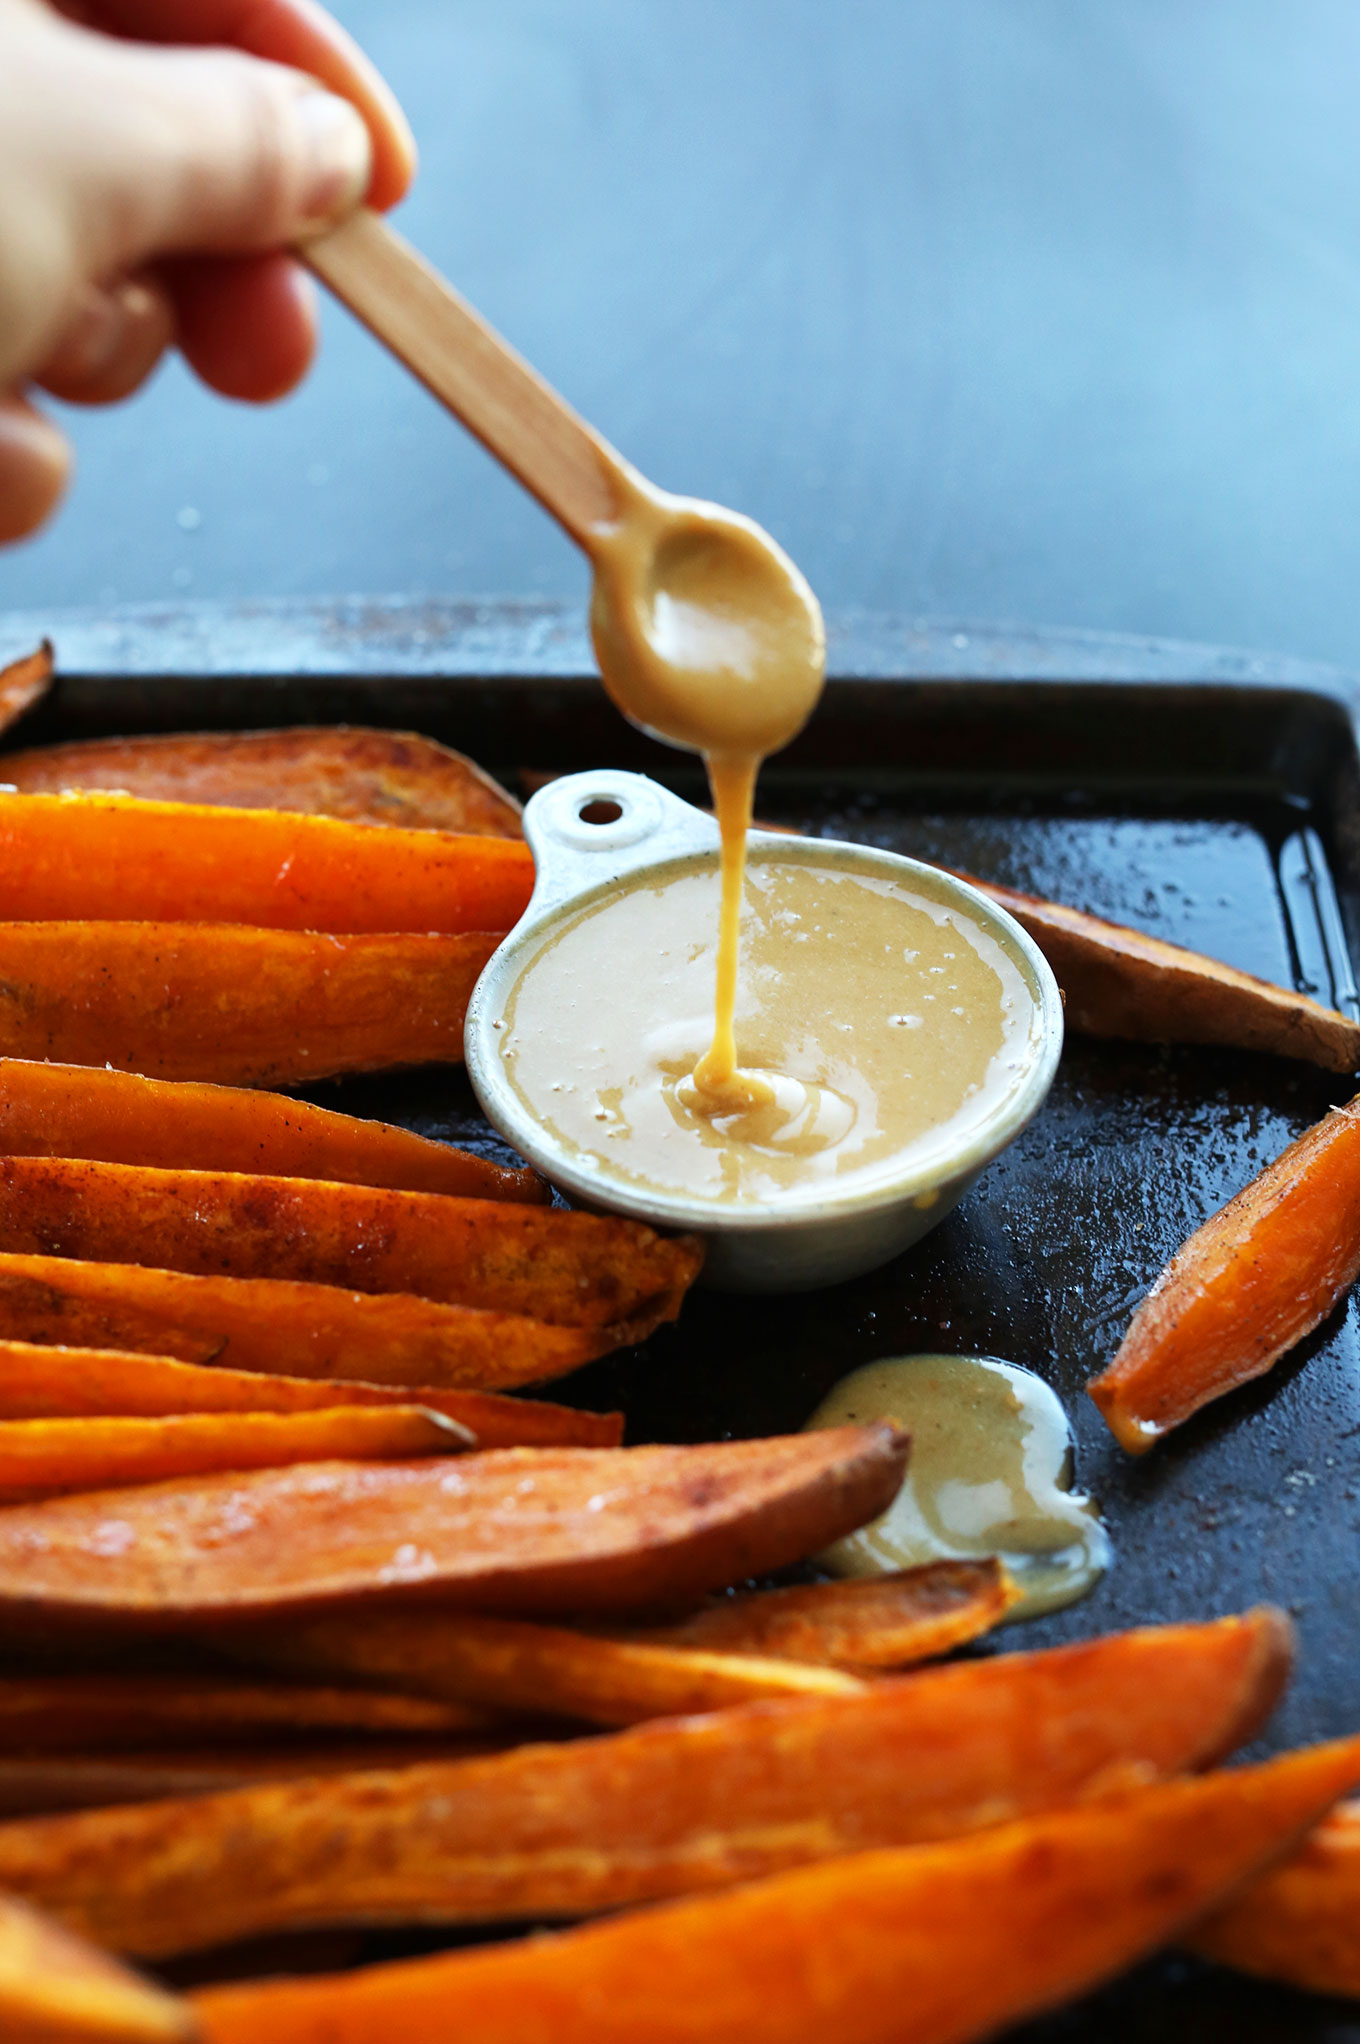 Using a small spoon to drizzle No-Honey Mustard Dipping Sauce for a gluten-free vegan snack